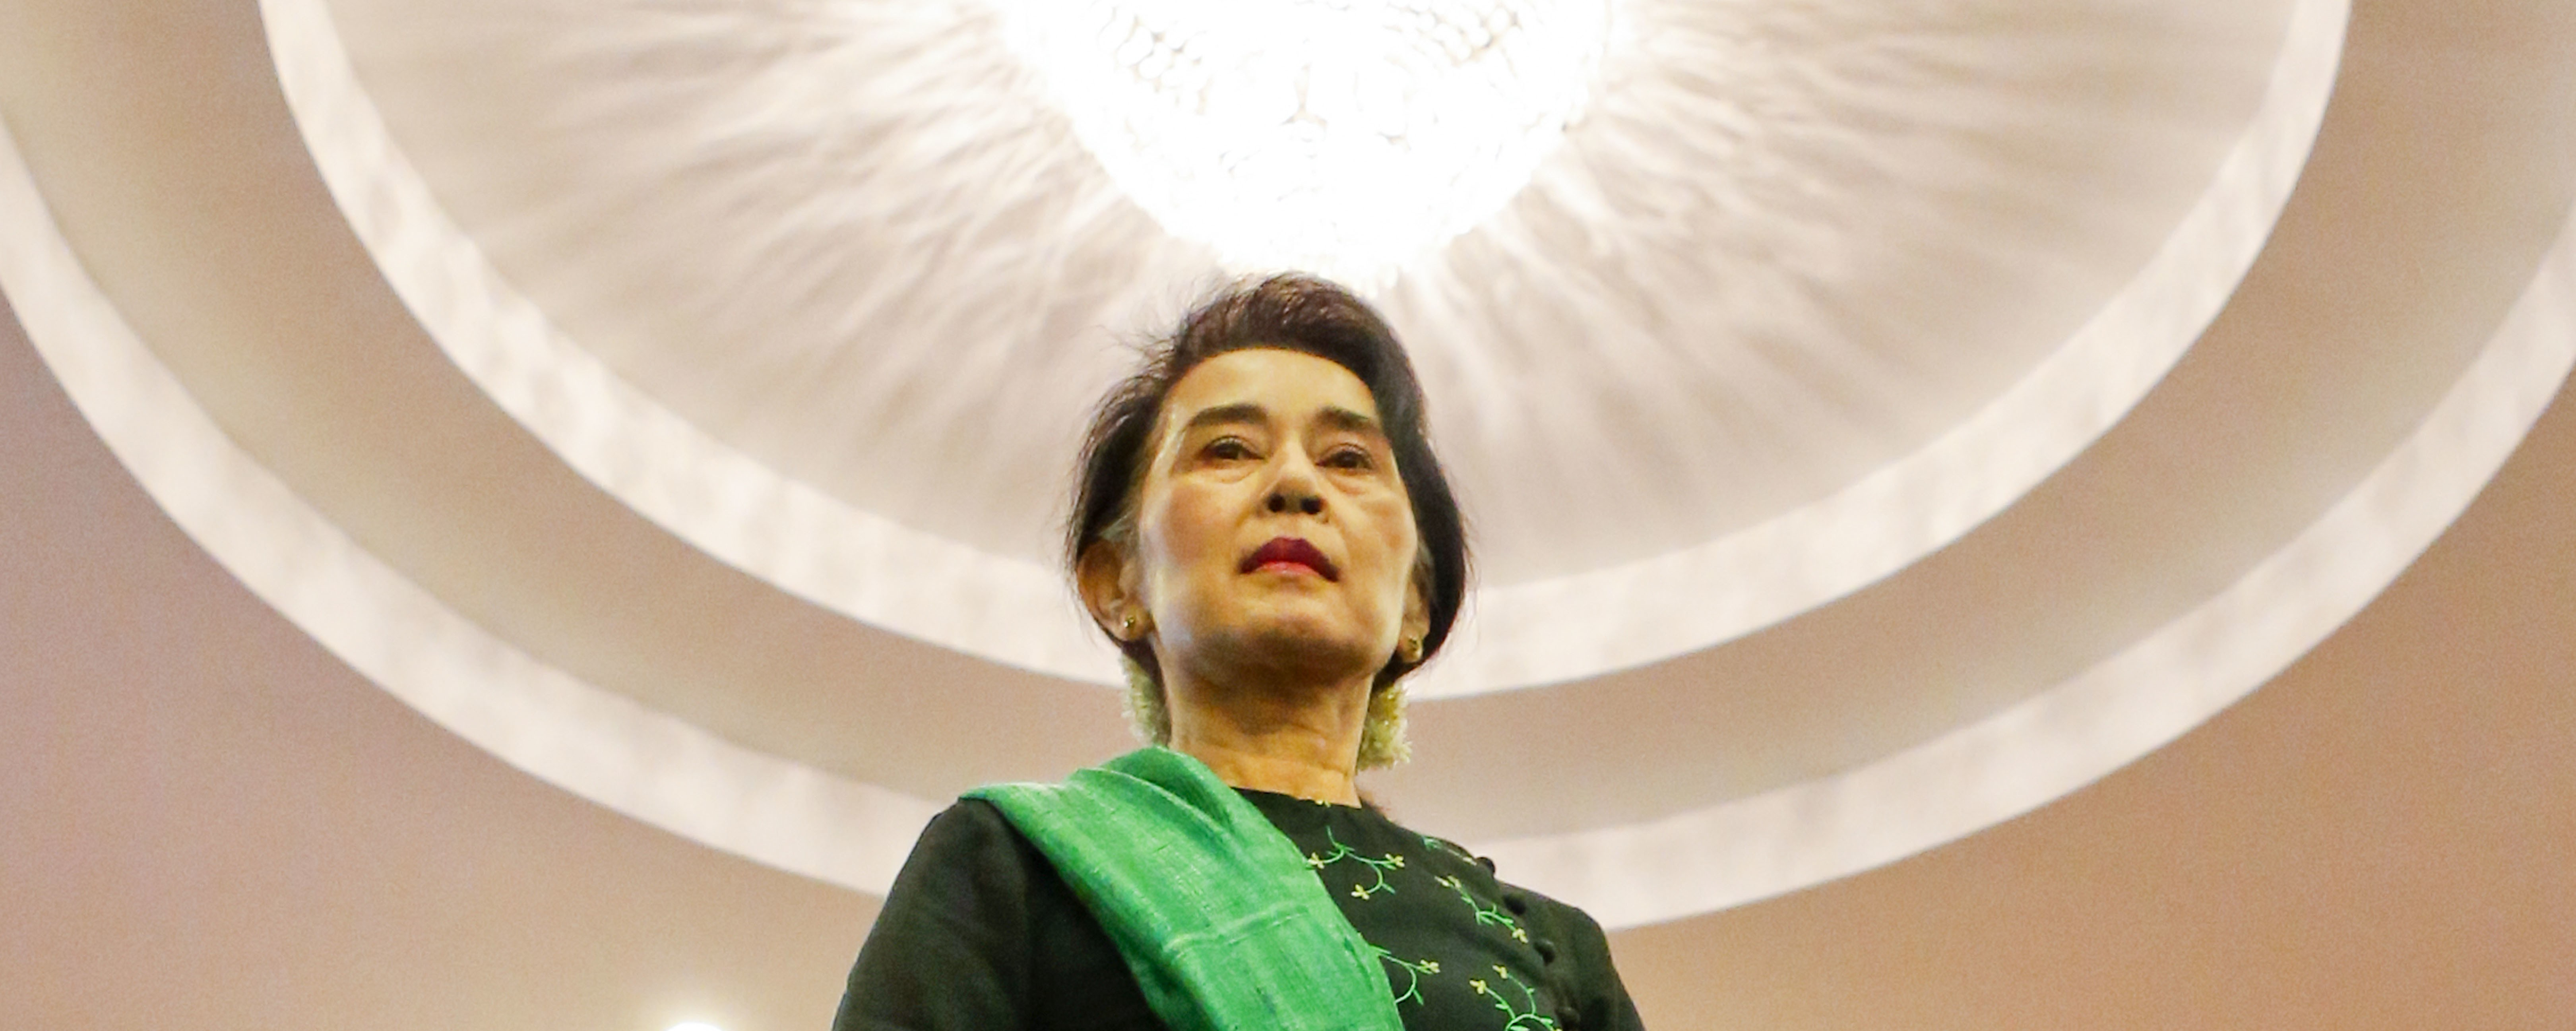 Myanmar Upholds Ban on Aung San Suu Kyi Becoming President